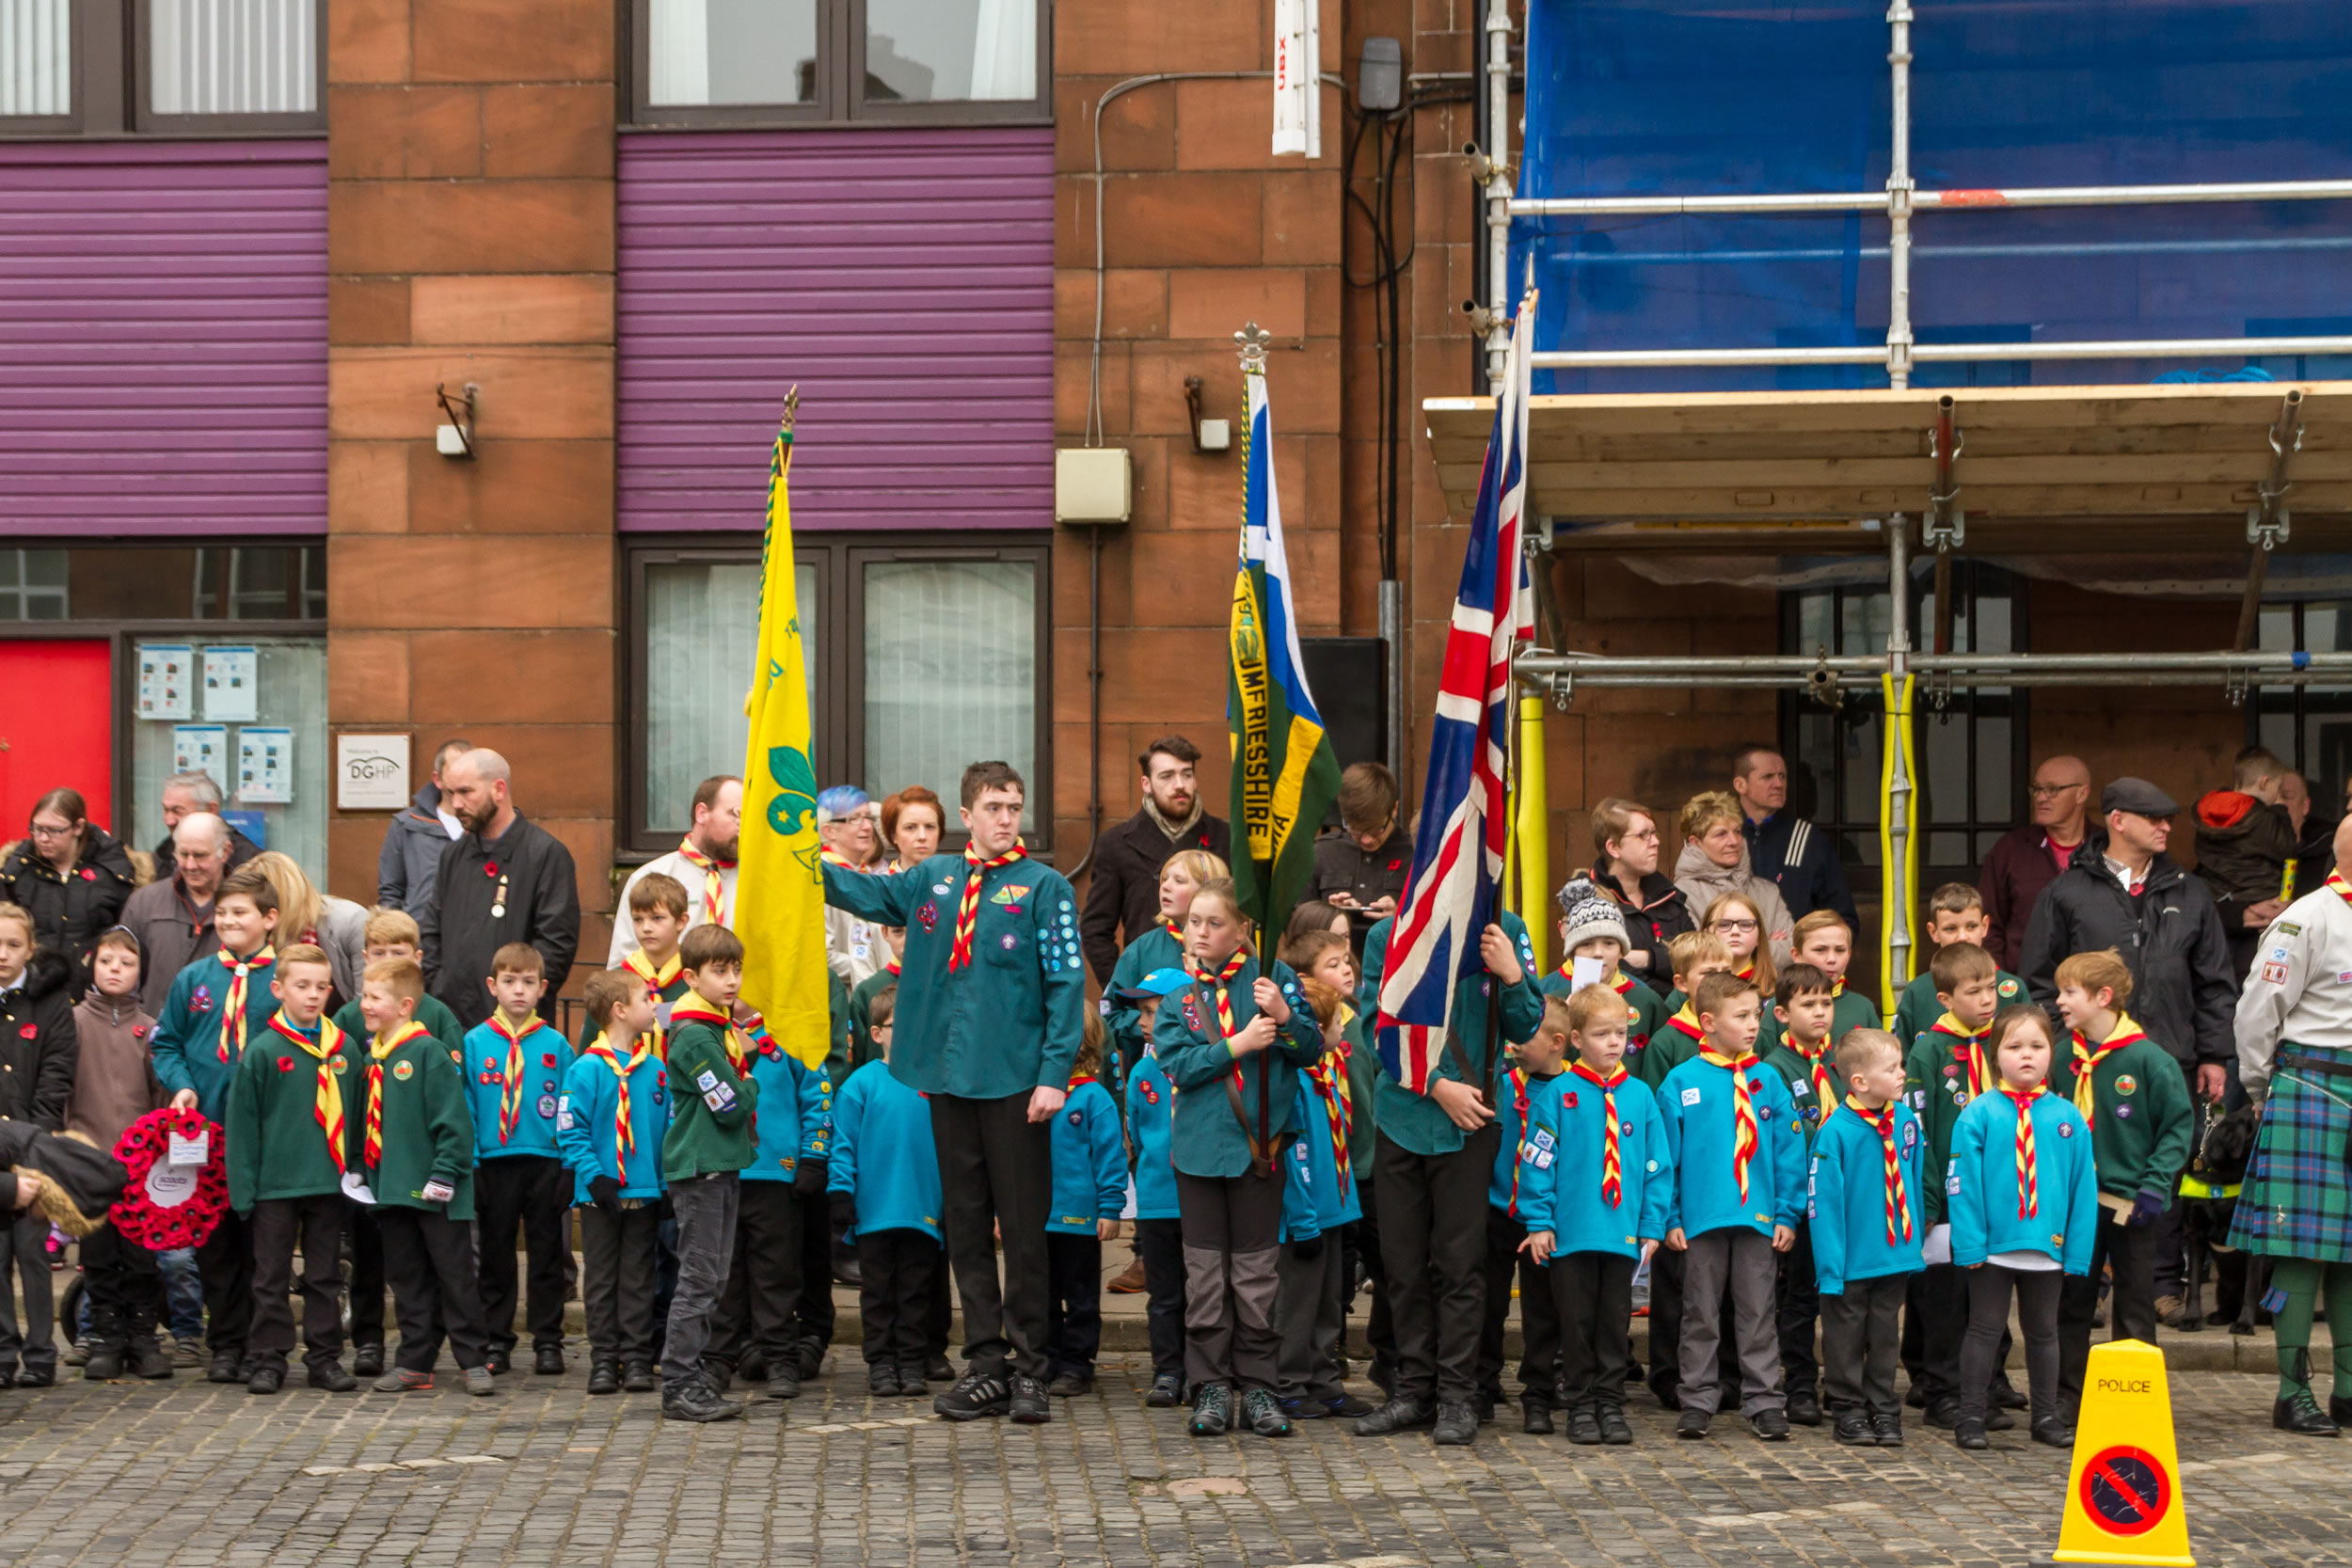 Scouts, Cubs and Beavers at the Remembrance Day Parade in Annan on Sunday 13th of November 2016